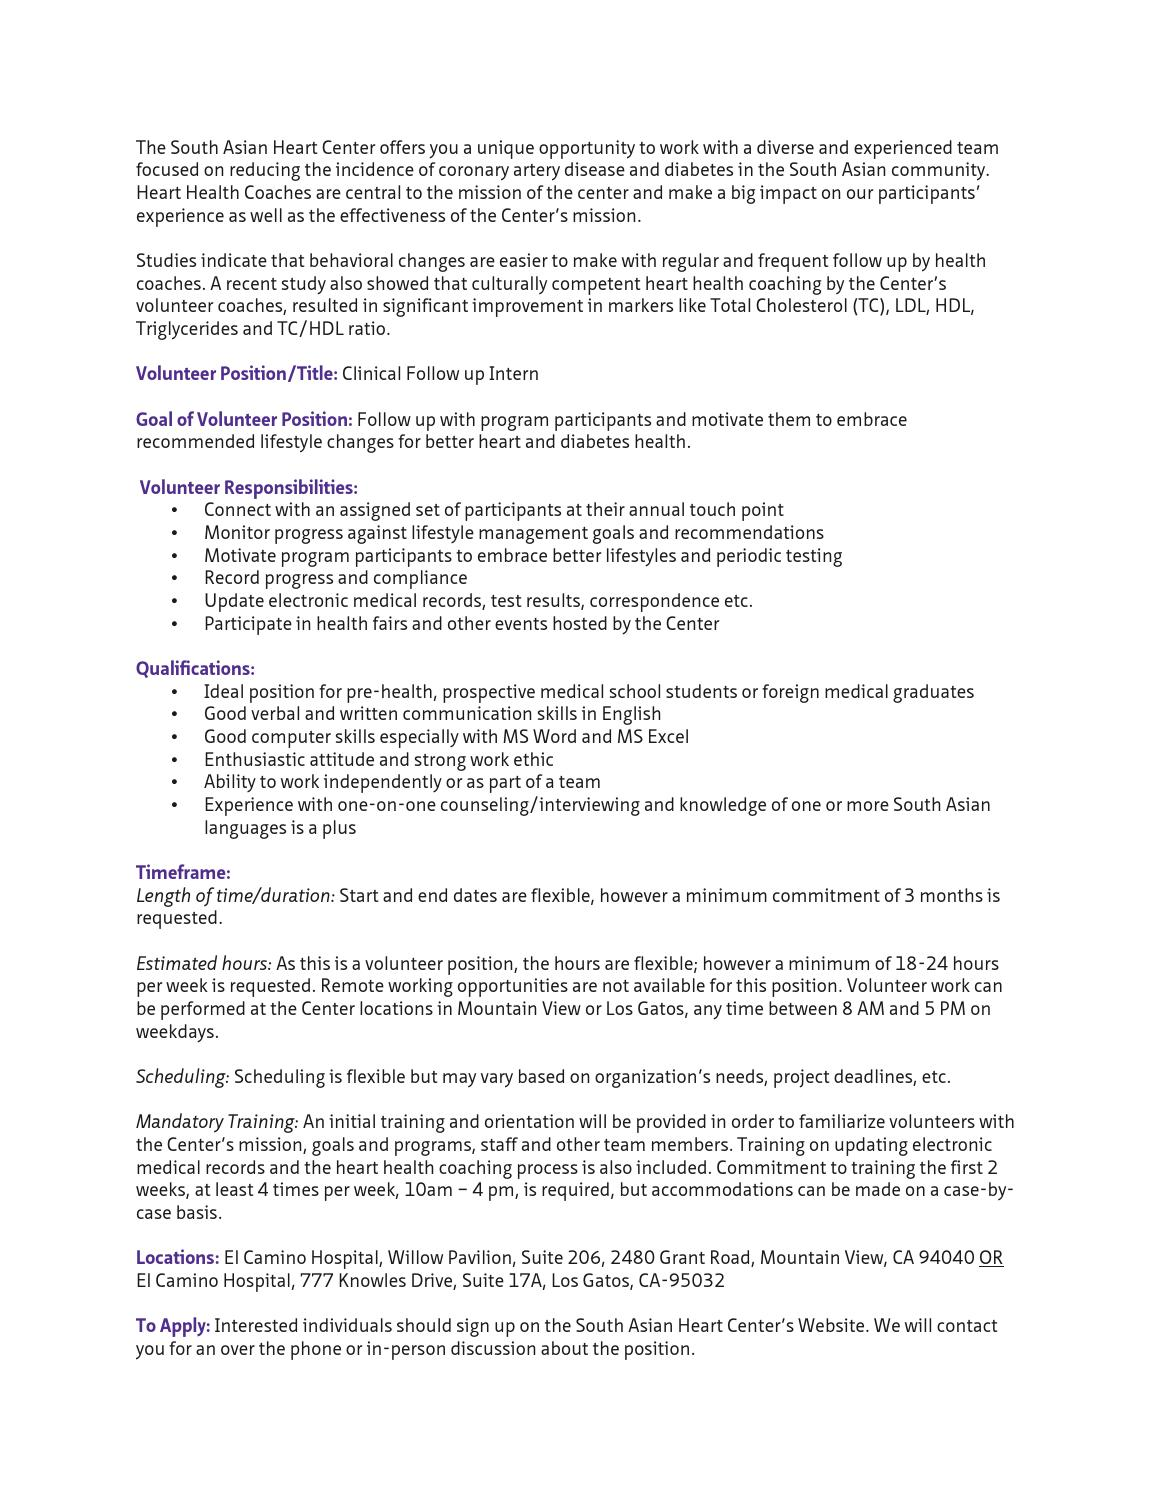 cliical follow up intern job description by south asian heart cliical follow up intern job description by south asian heart center issuu